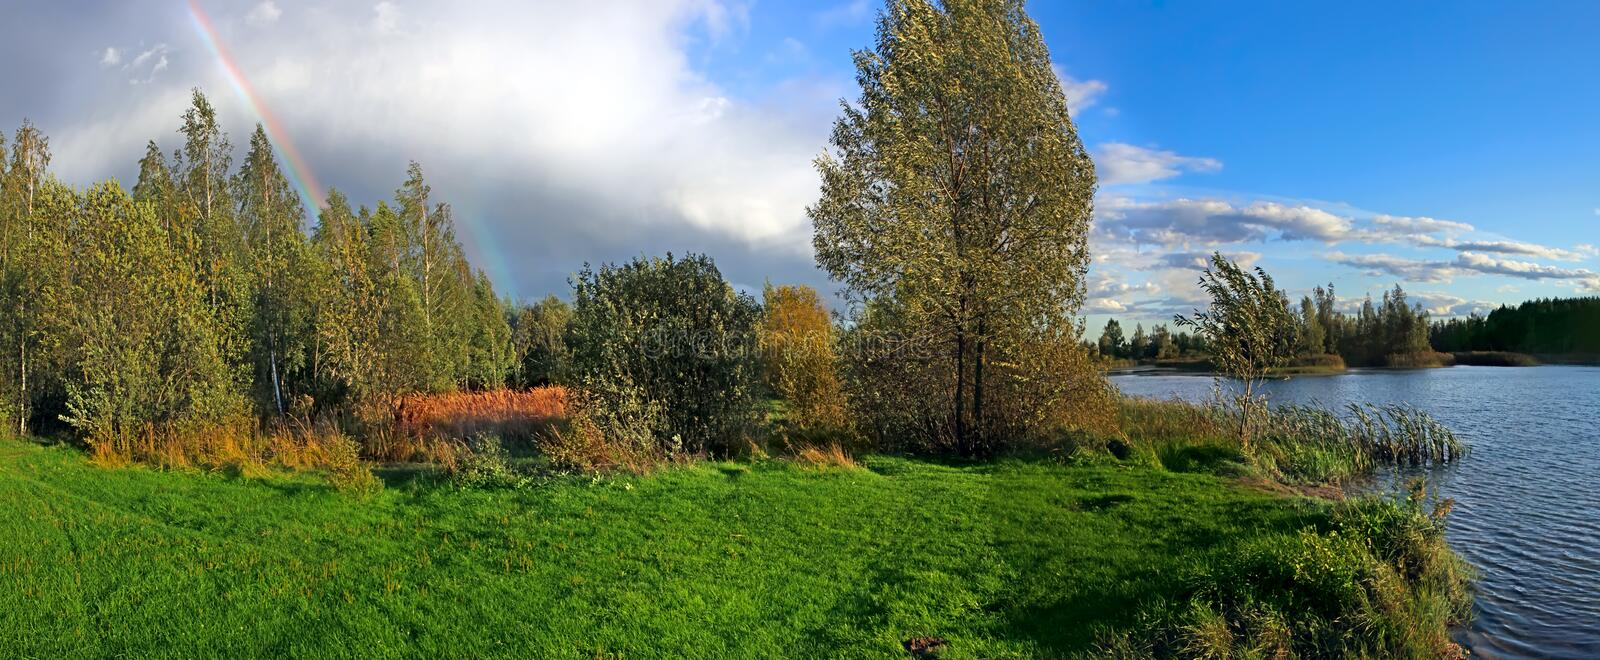 Download Beautiful autumn landscape stock photo. Image of outdoor - 26530374